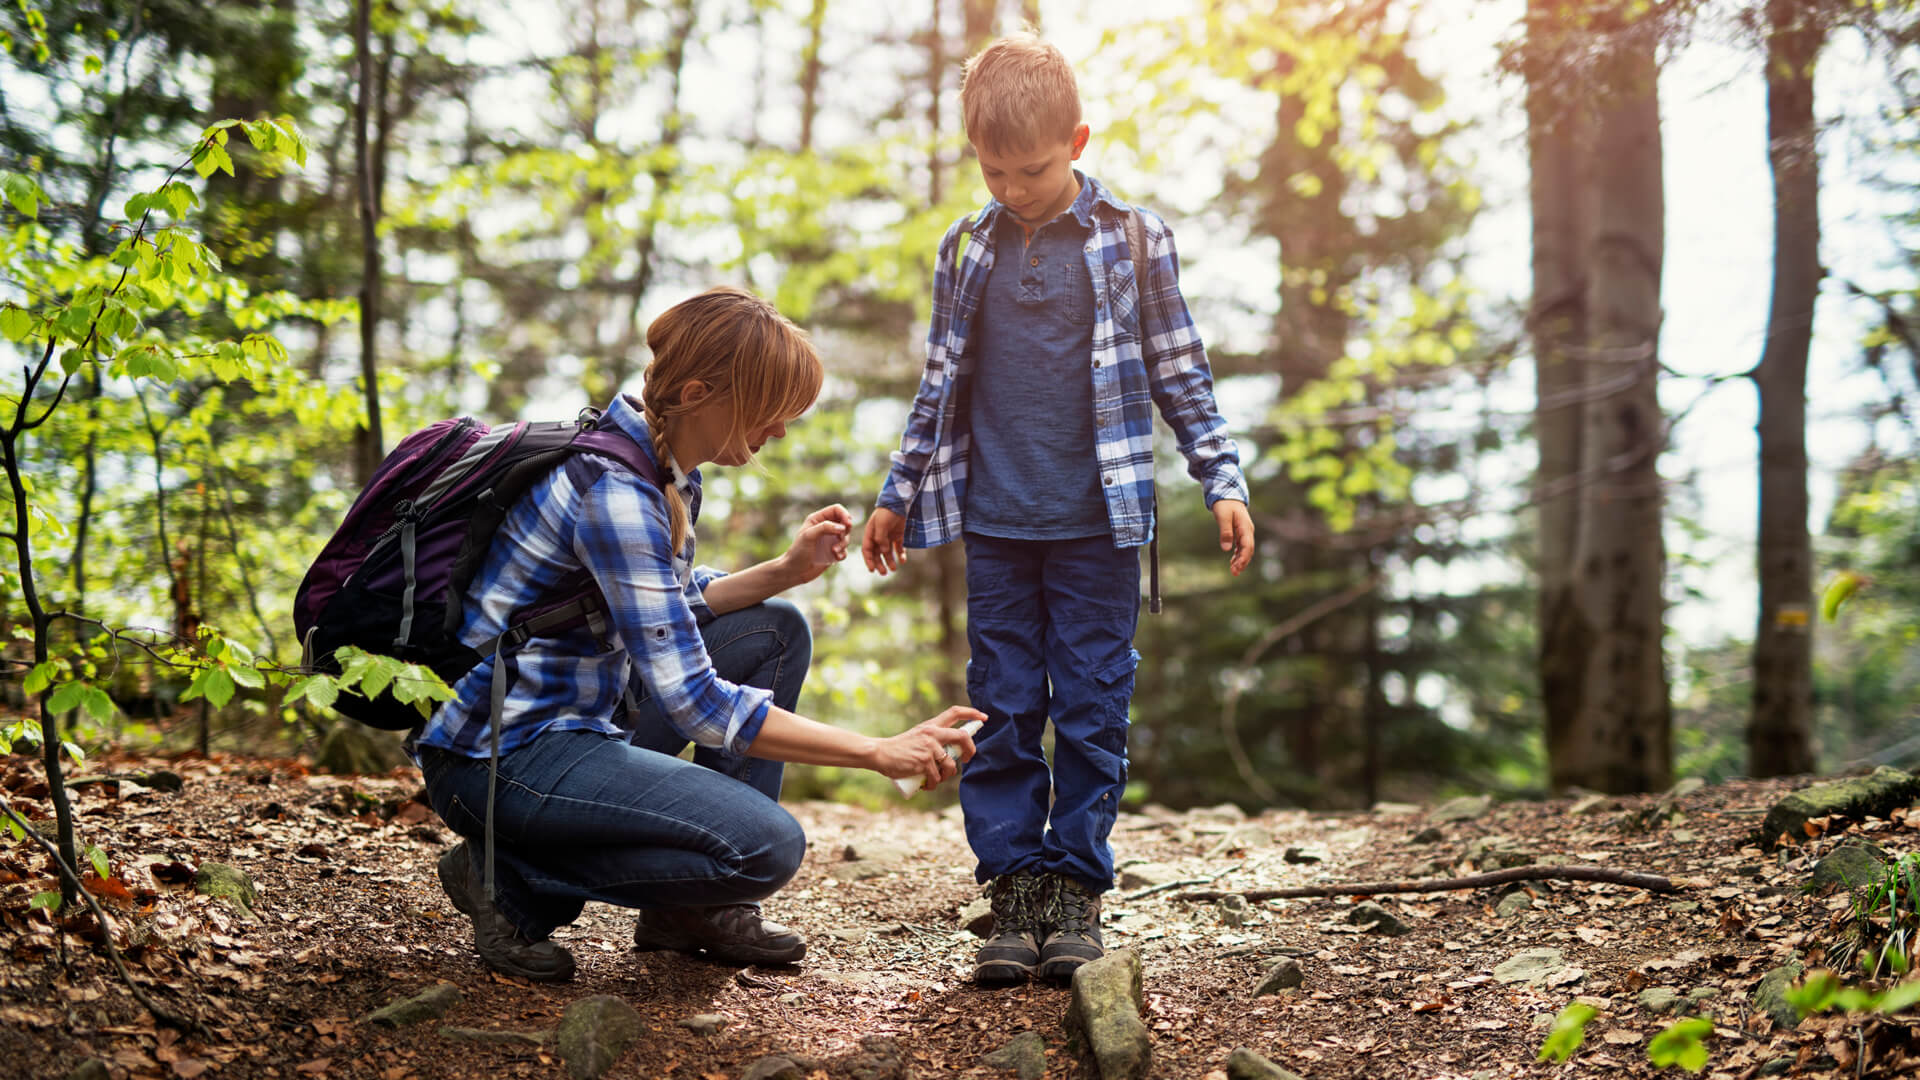 Tickborne illnesses are on the rise. Carmen Teague, MD, specialty medical director in internal medicine with Mecklenburg Medical Group - Uptown, discusses how to protect yourself and your family, while still enjoying your favorite outdoor activities.